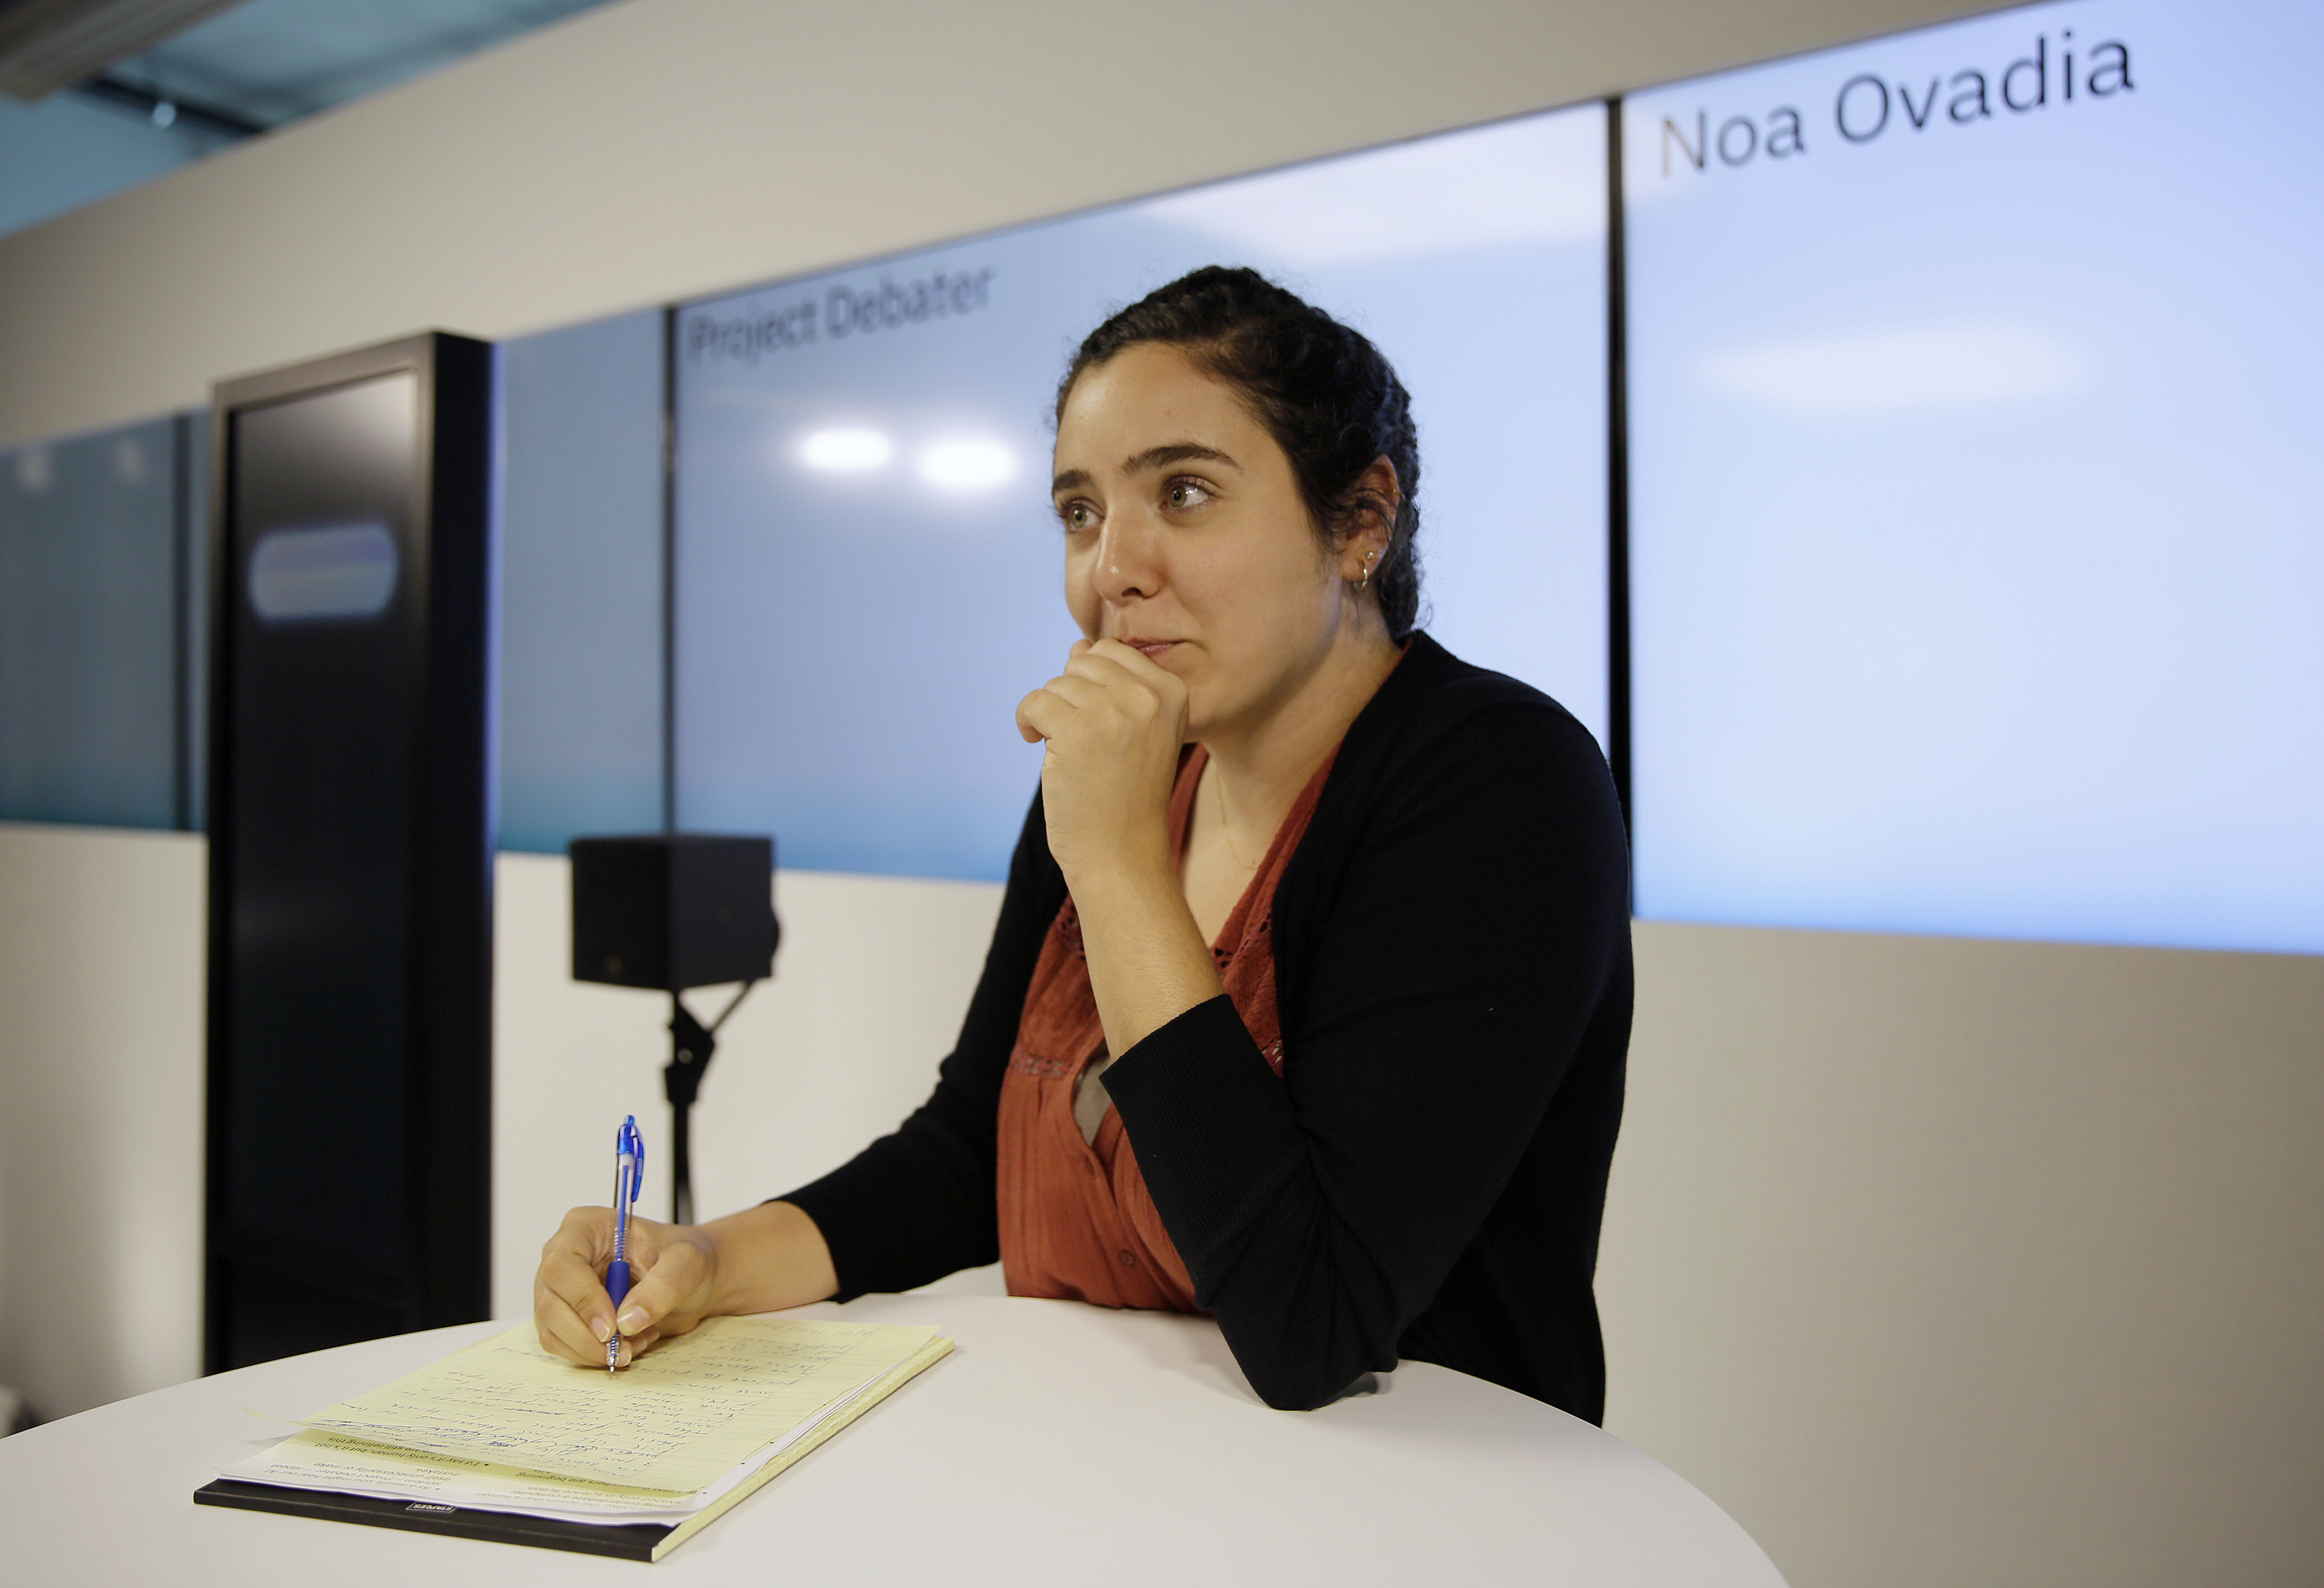 Noa Ovadia takes notes during her debate against the IBM Project Debater in San Francisco, June 18, 2018.